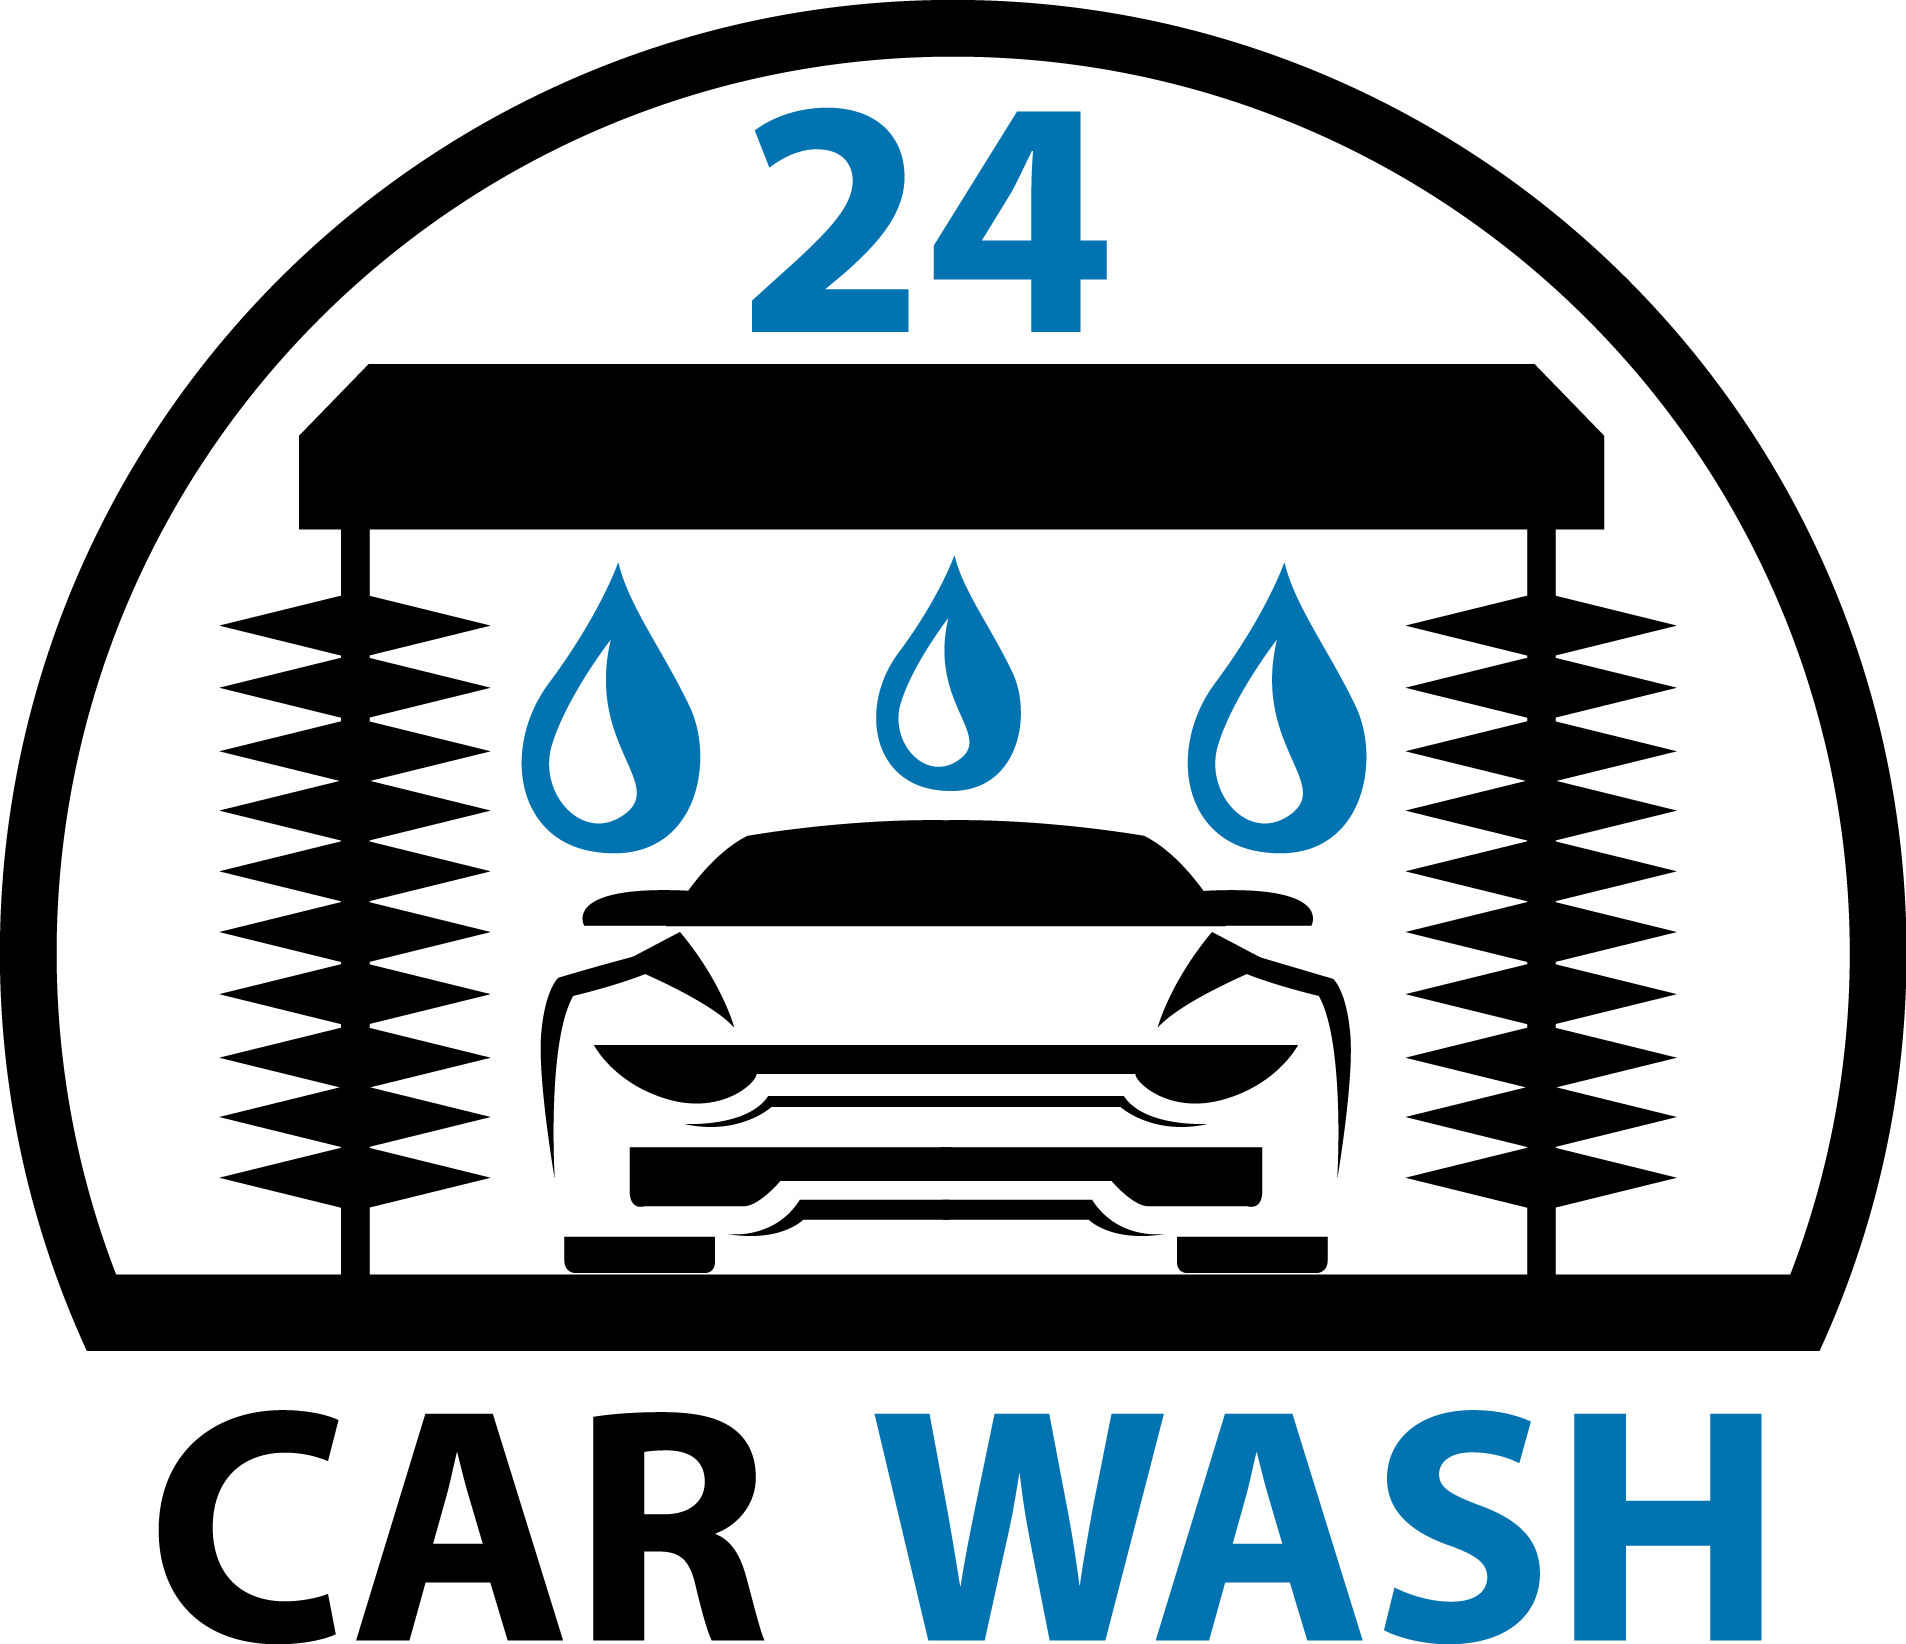 Car wash hose clipart image transparent Car Wash | Maple Grove BP | Maple Grove, MNMaple Grove BP image transparent